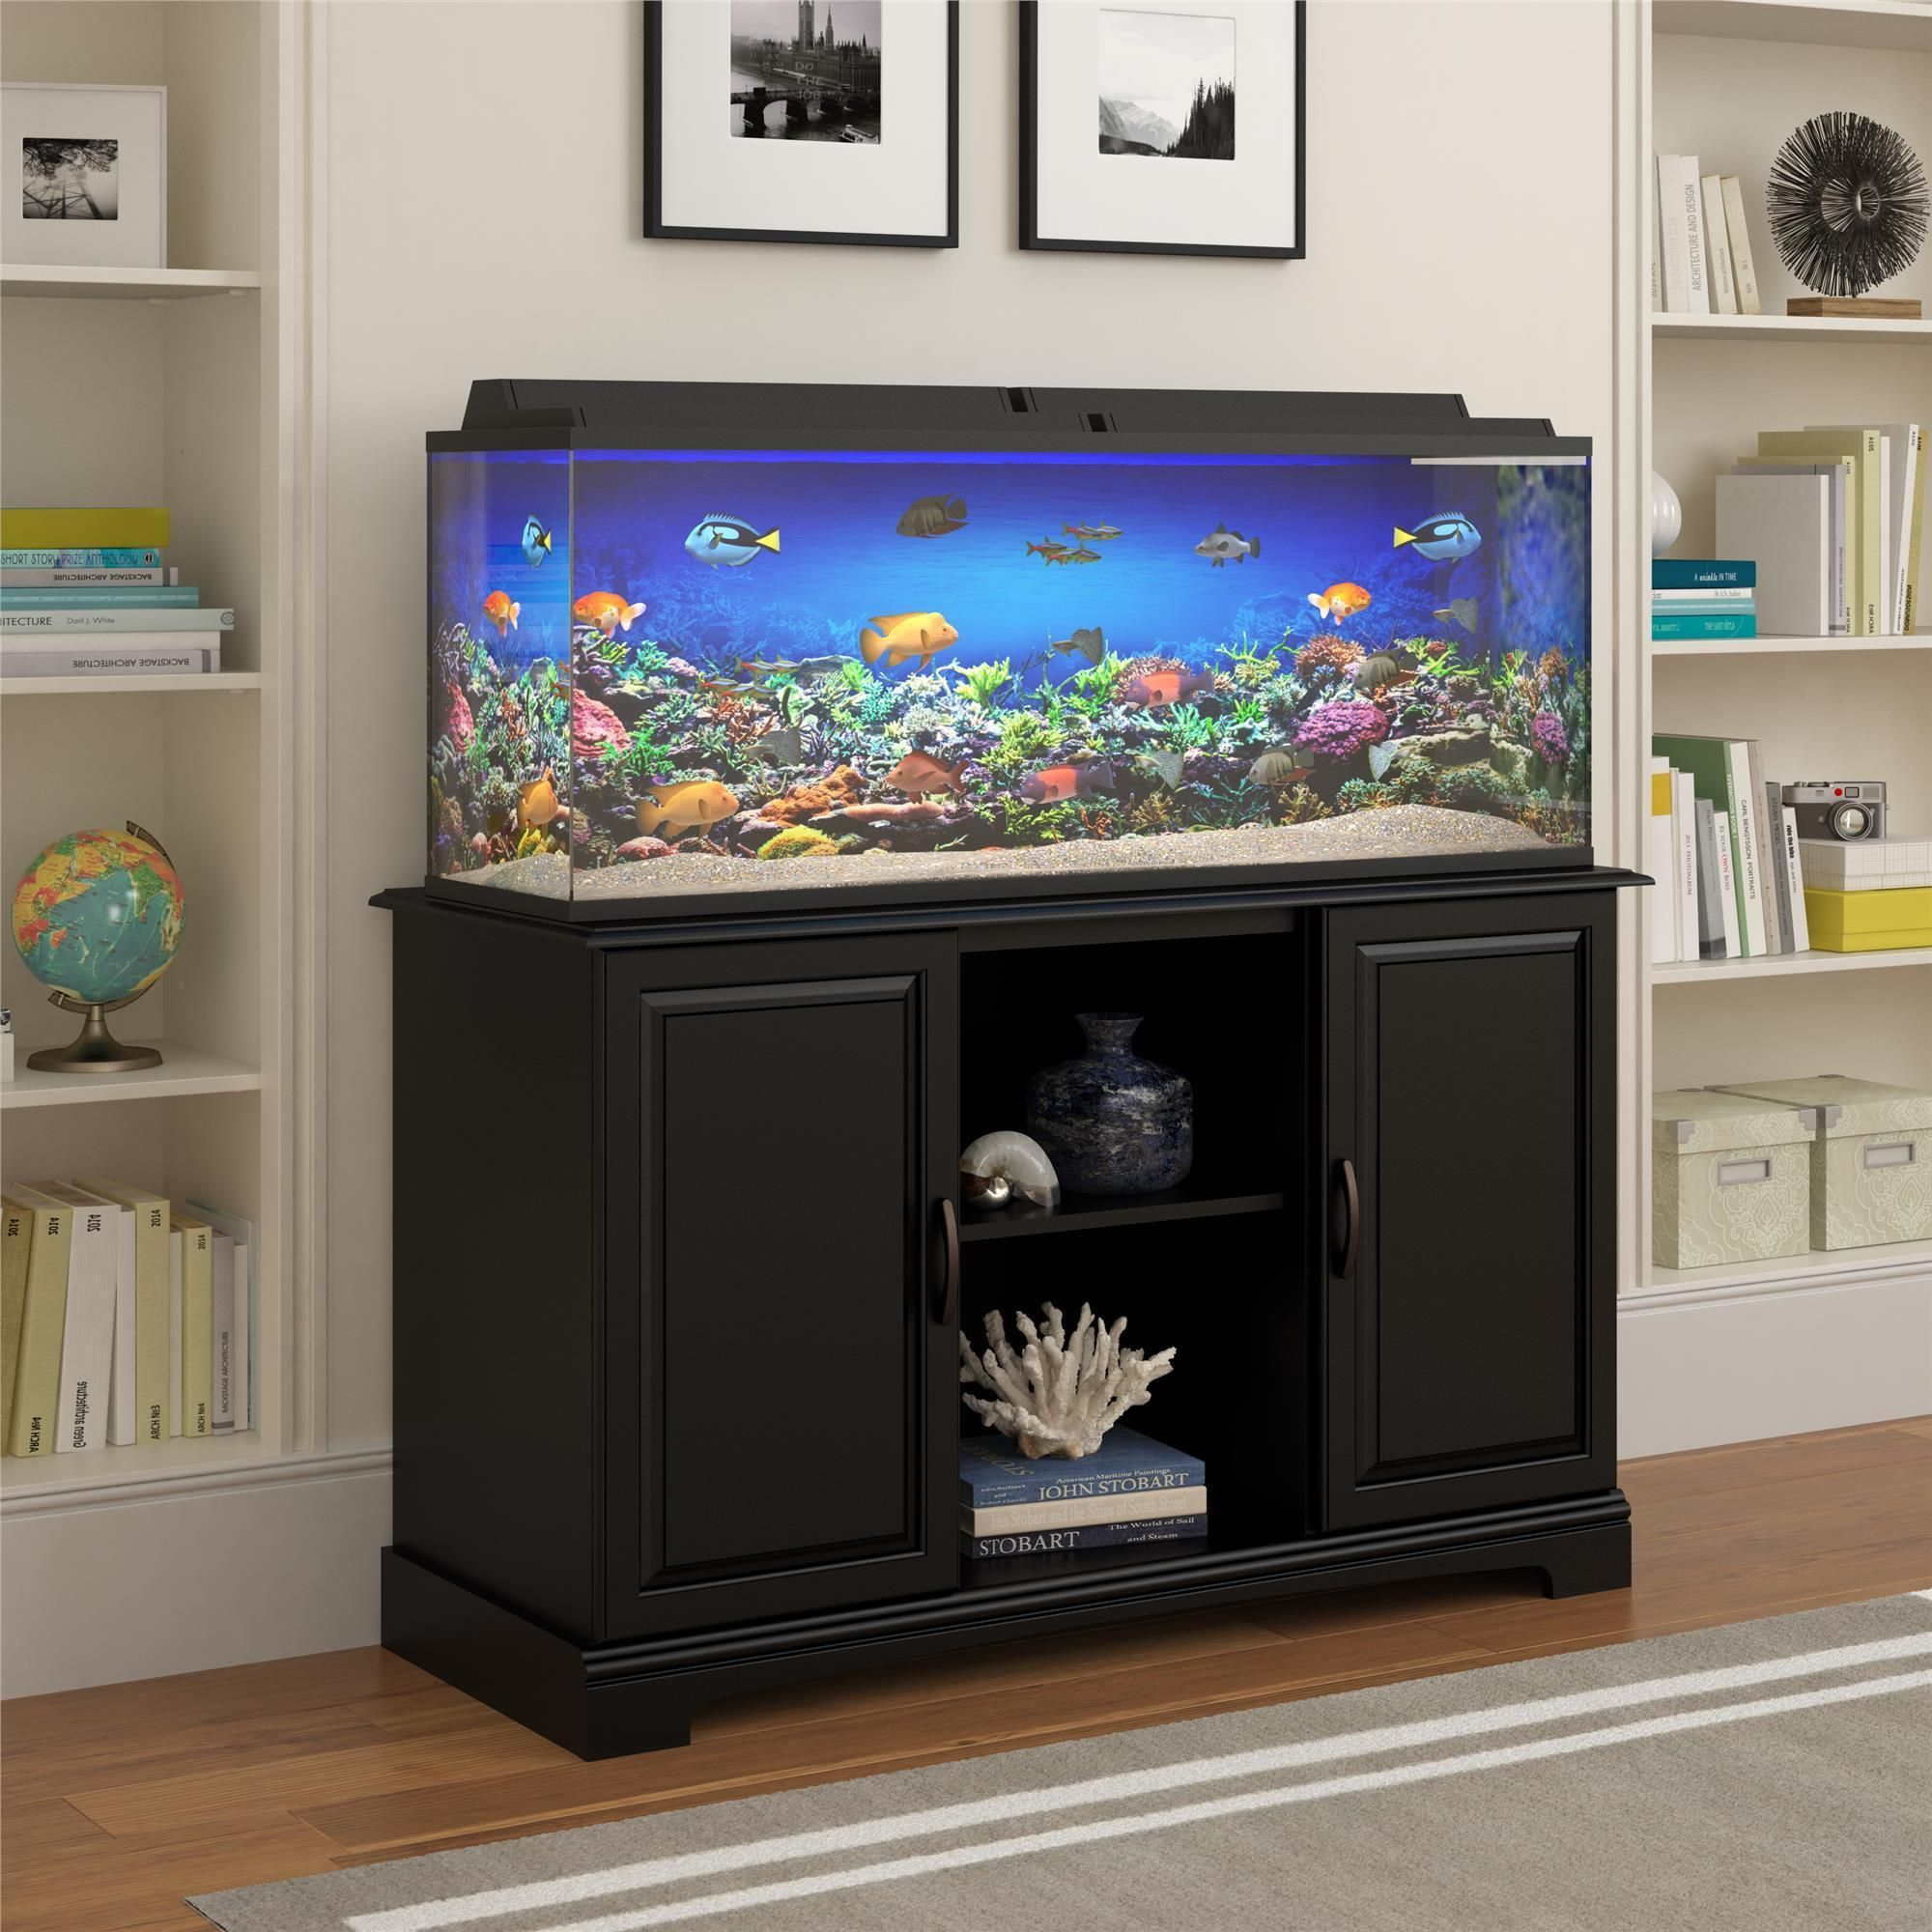 Altra harbor 50 75 gallon aquarium stand fish tanks for 75 gallon fish tank dimensions